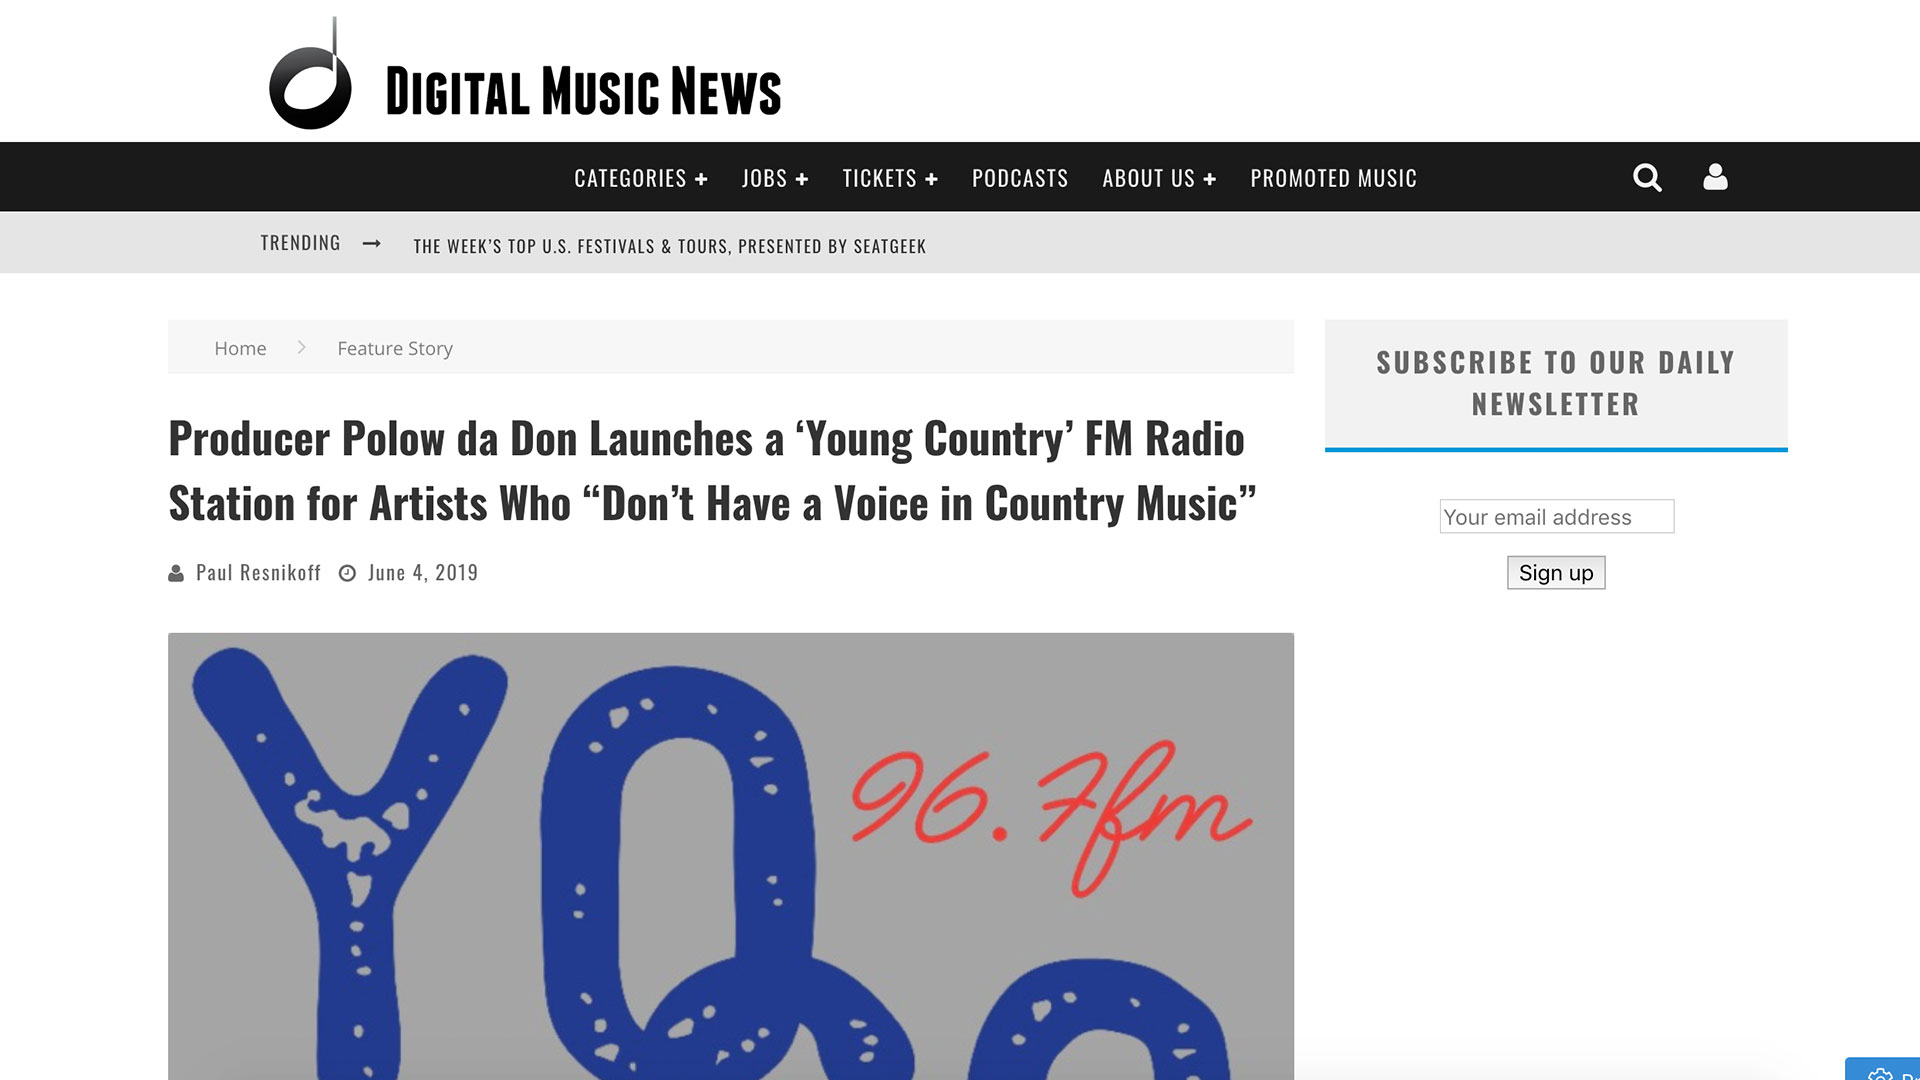 """Fairness Rocks News Producer Polow da Don Launches a 'Young Country' FM Radio Station for Artists Who """"Don't Have a Voice in Country Music"""""""